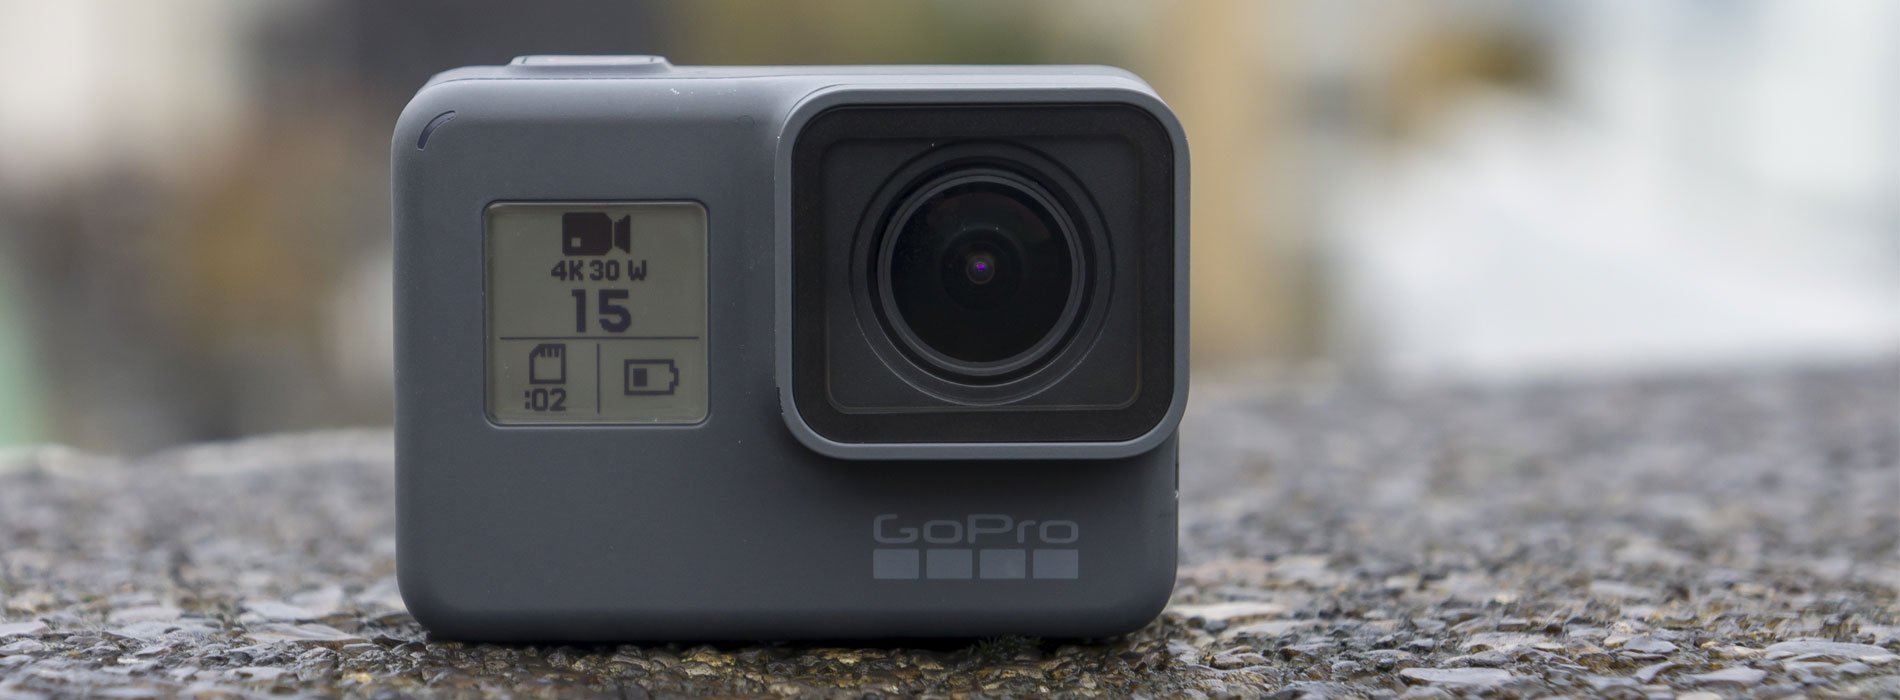 Noleggio_rental_accessori_gopro_hero_5_black_review_main